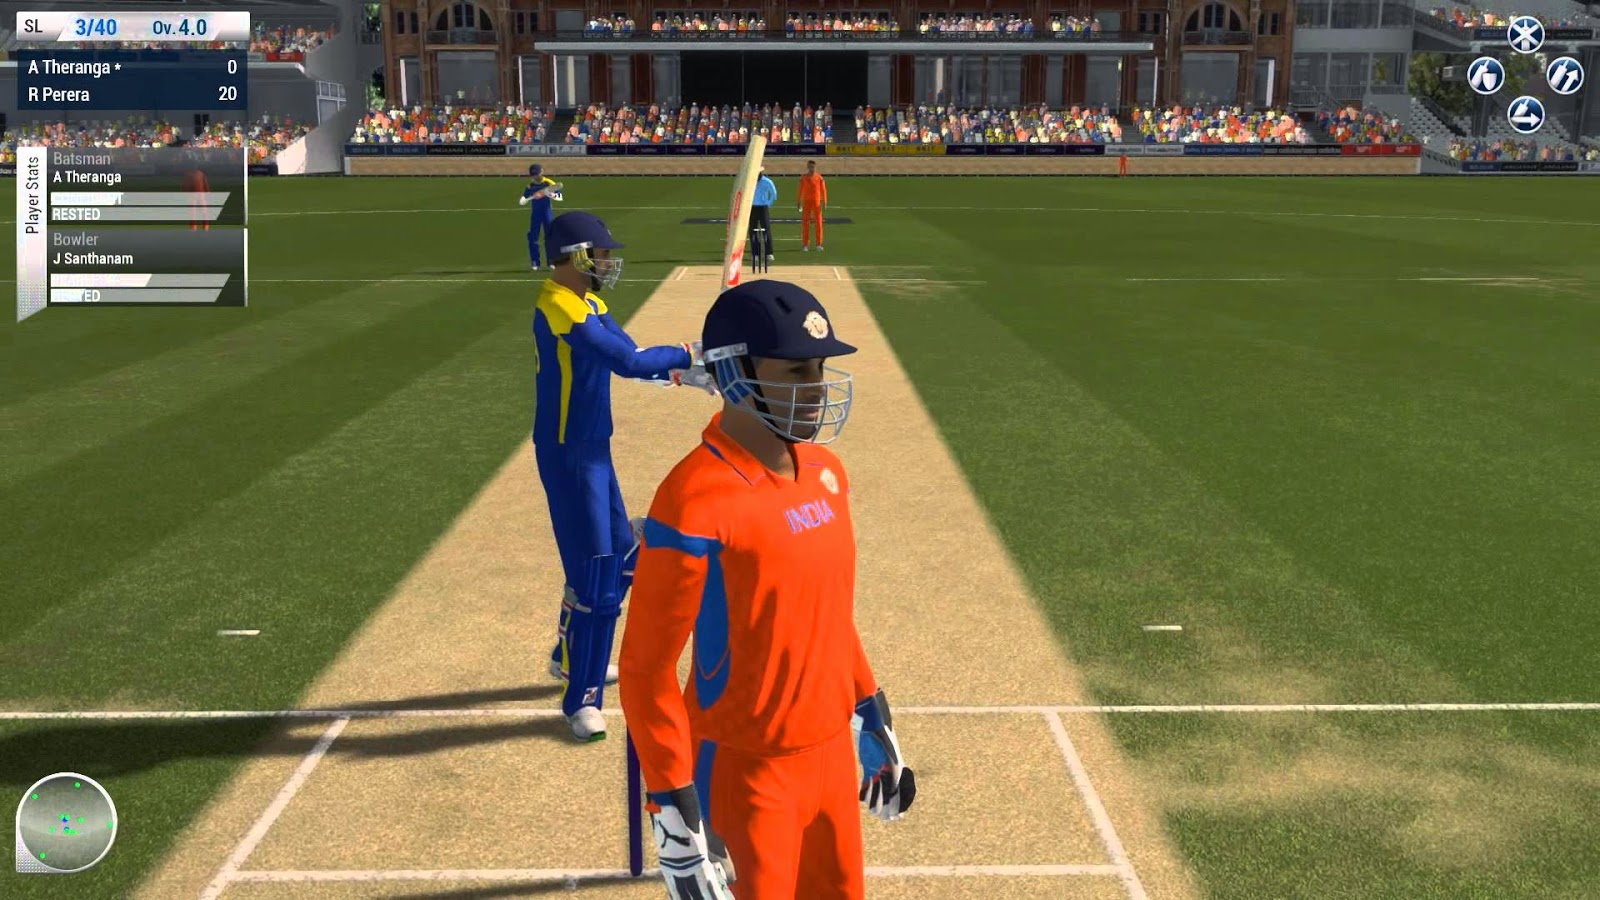 new cricket games play online 2014